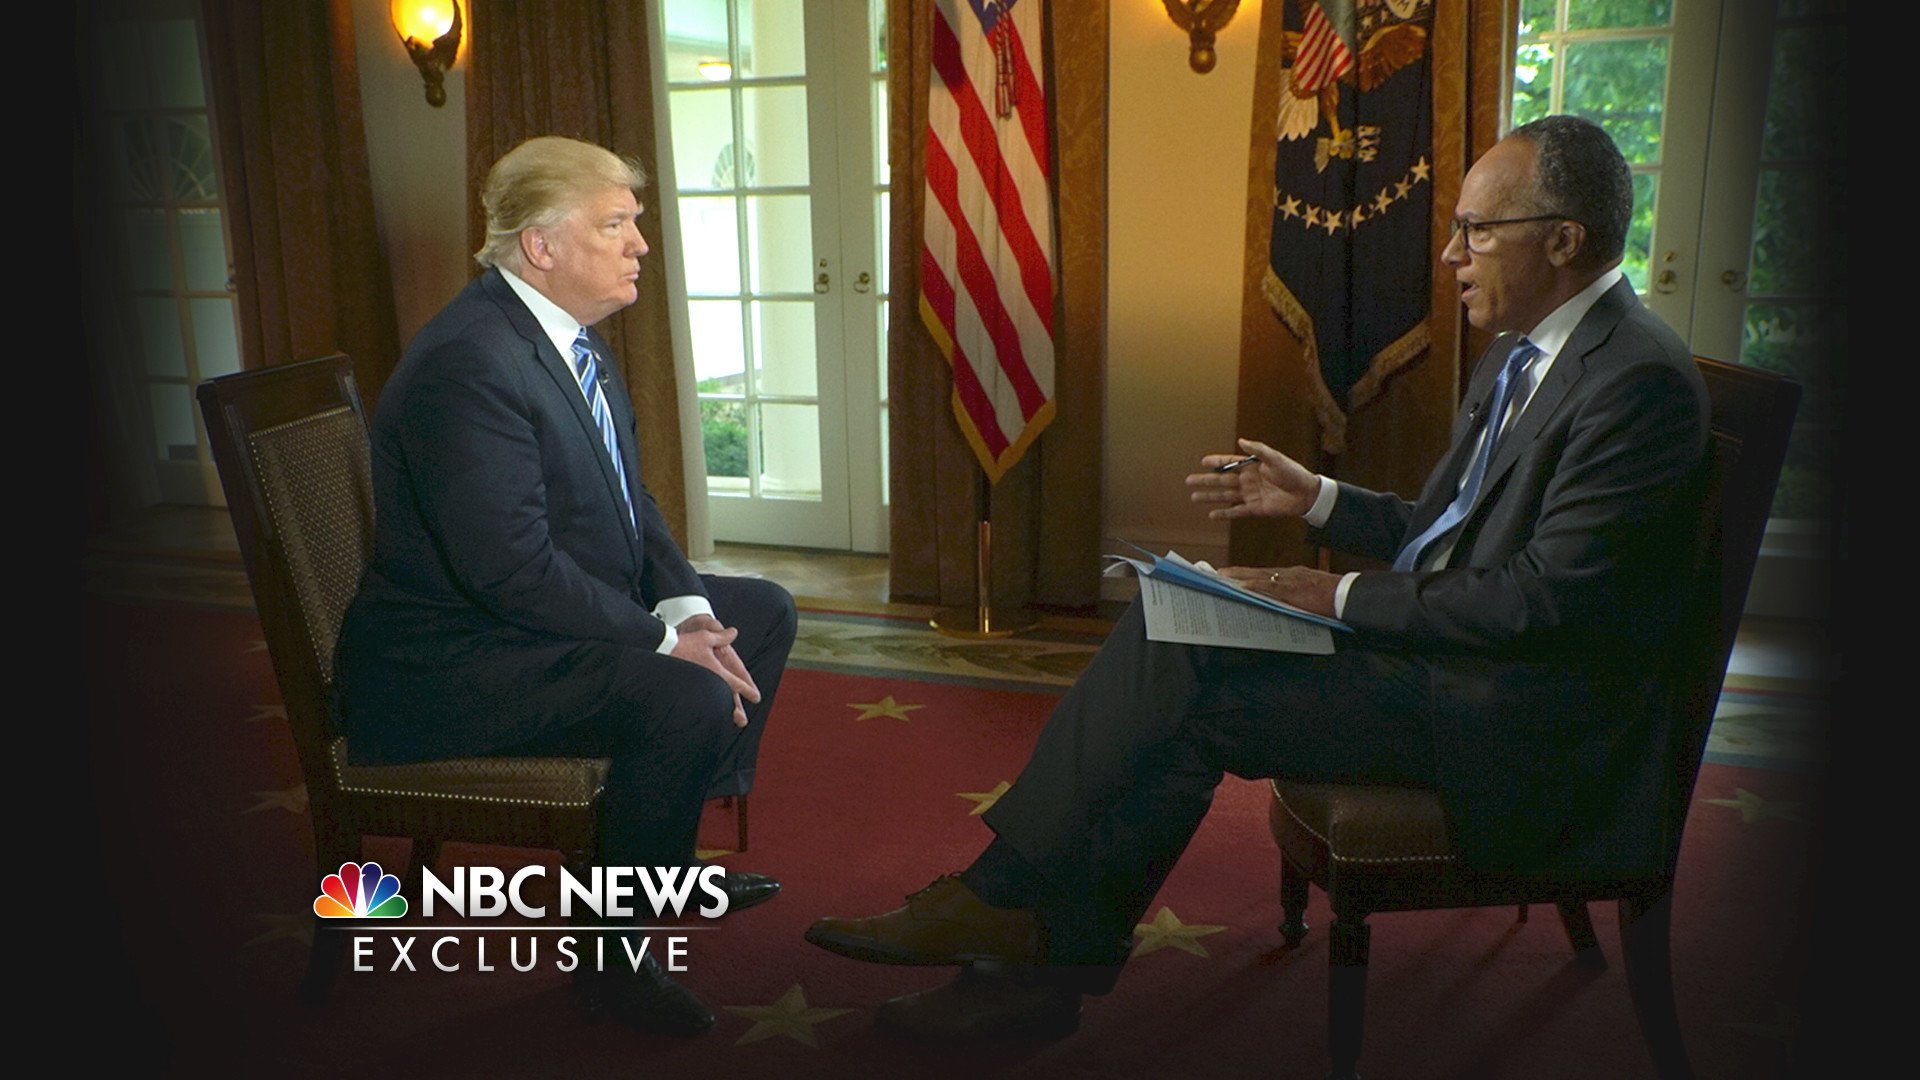 NBC's Lester Holt interviews President Trump on May 11.